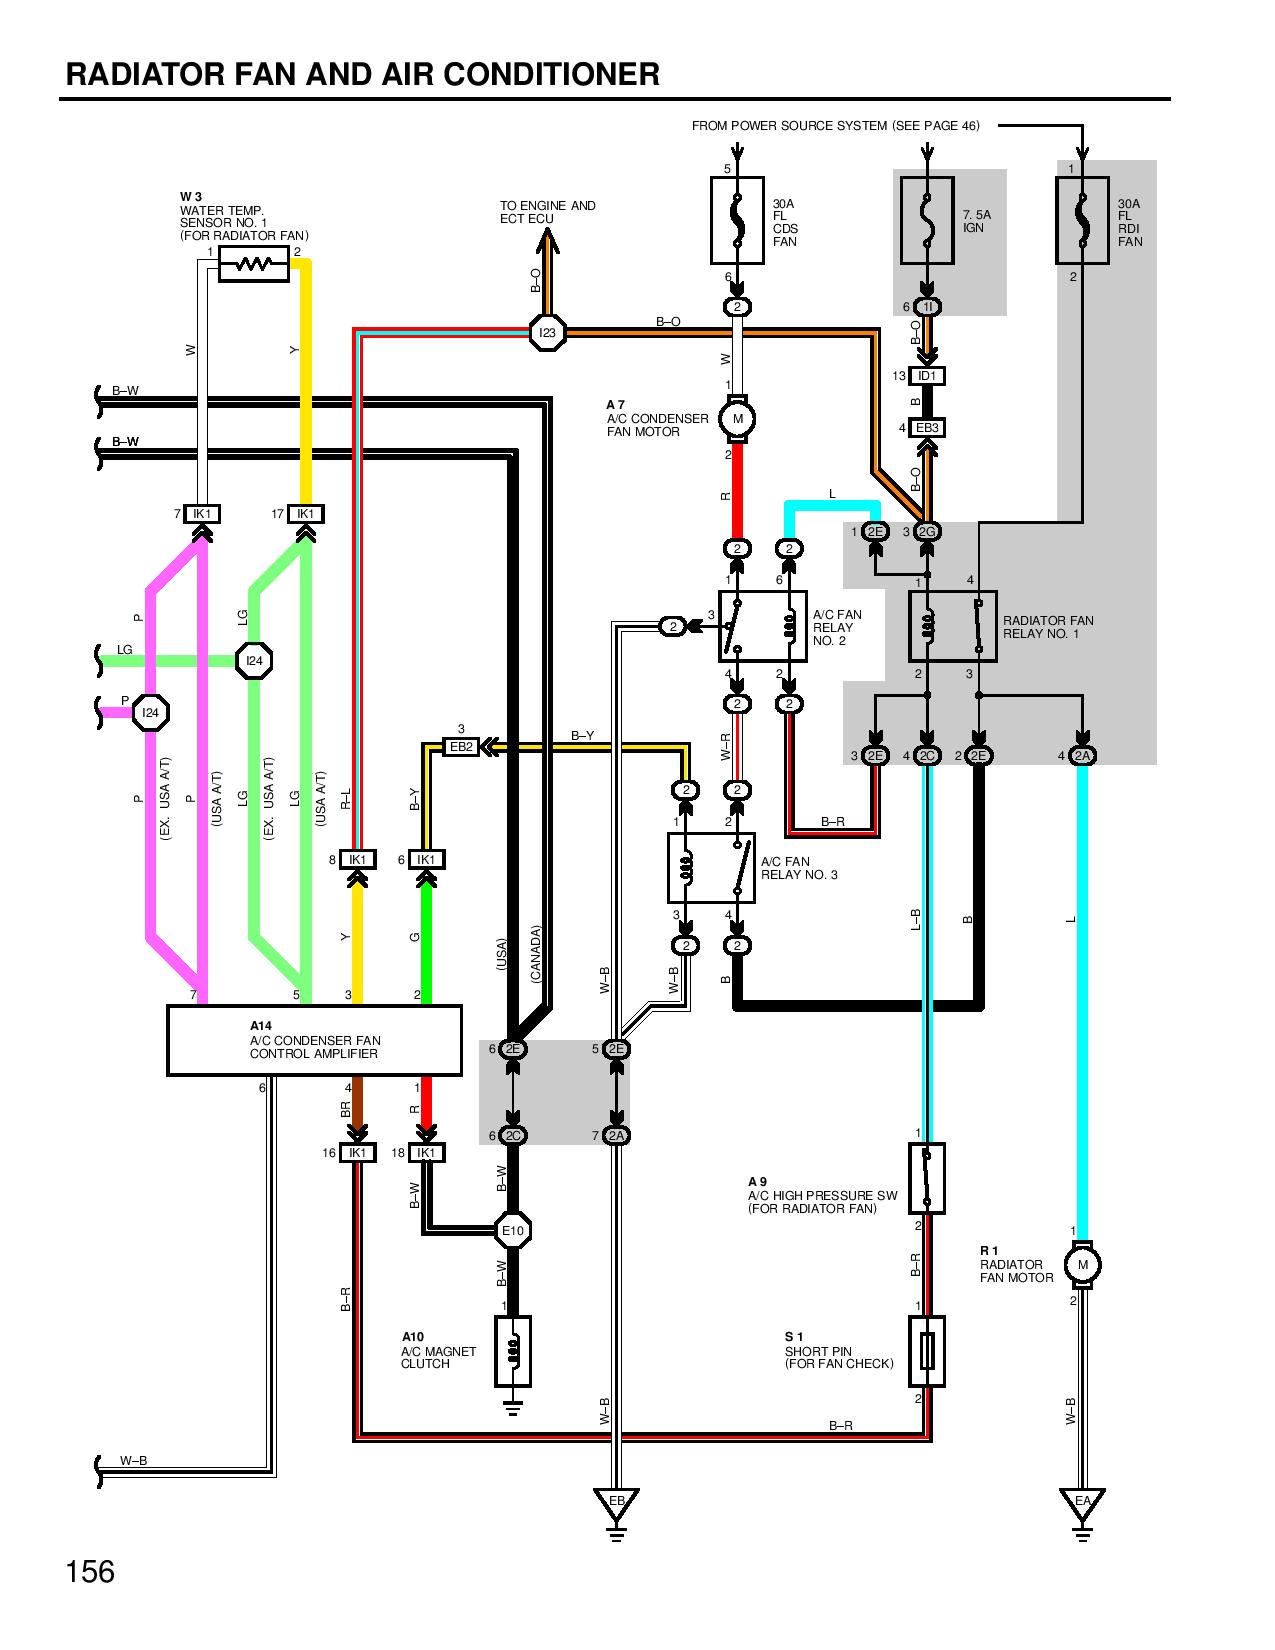 4e1a7b9 Daihatsu Mira L2 Wiring Diagram Wiring Resources